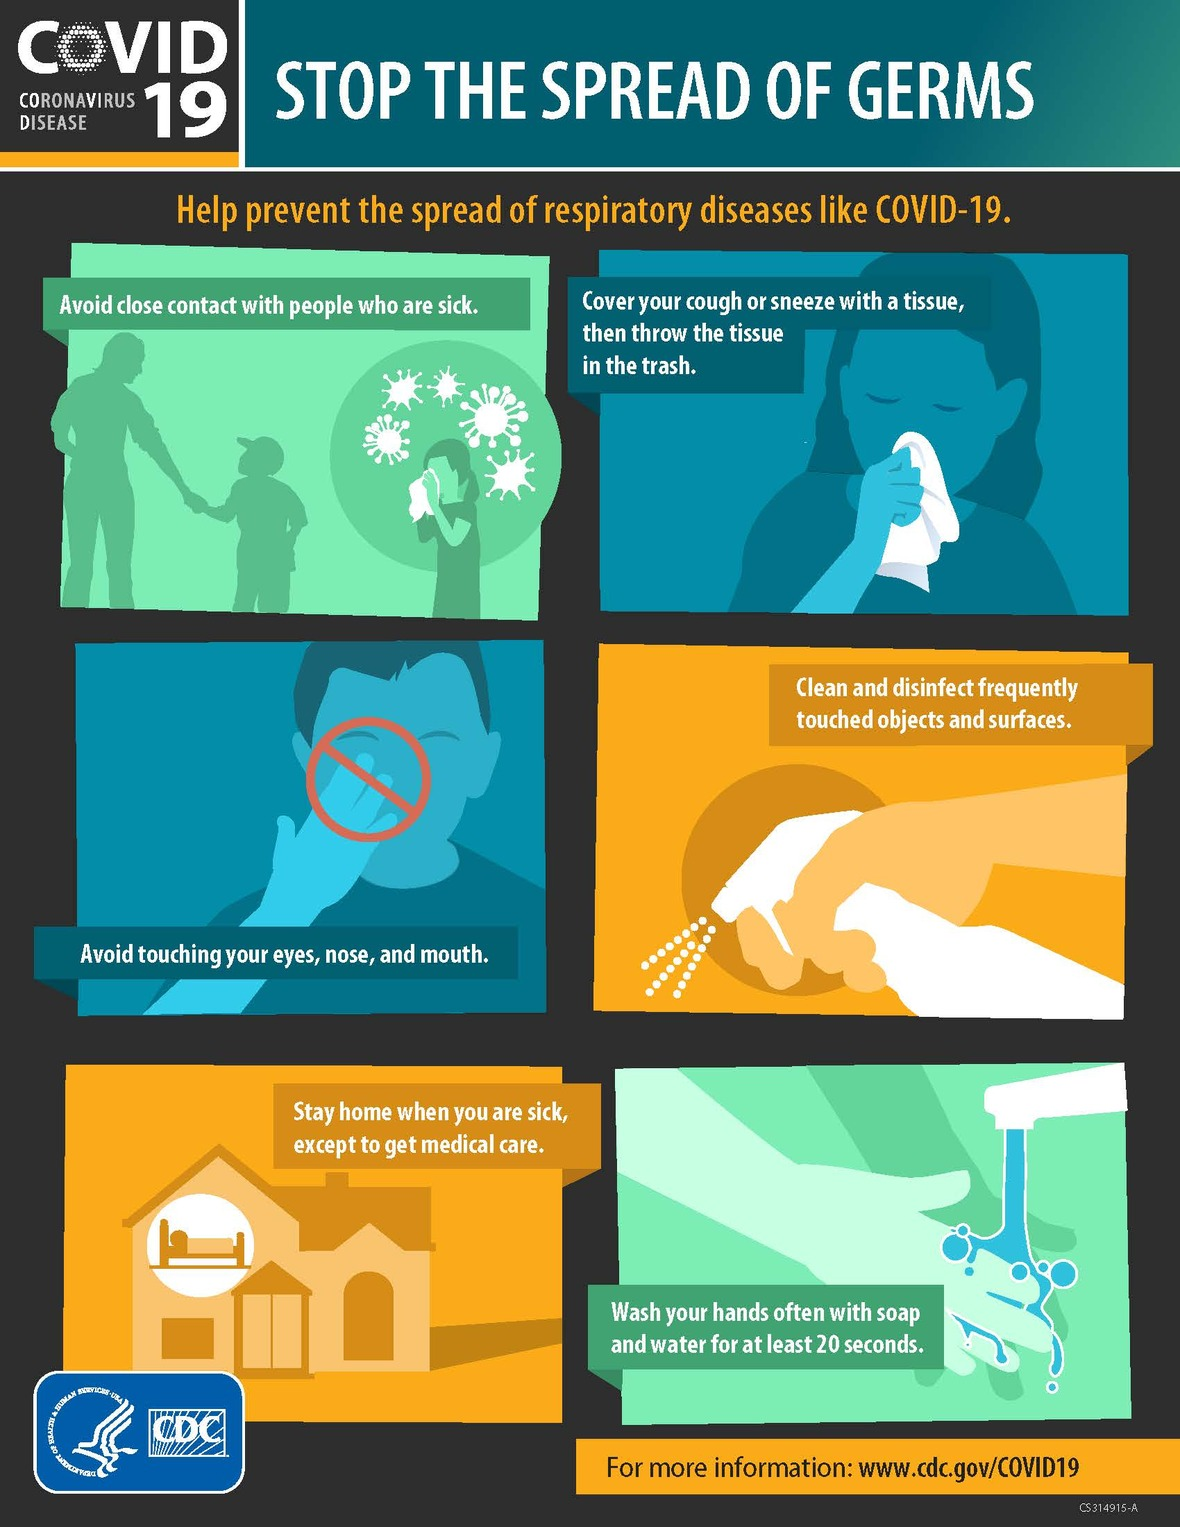 COVID-19-Stop-the-Spread-of-Germs